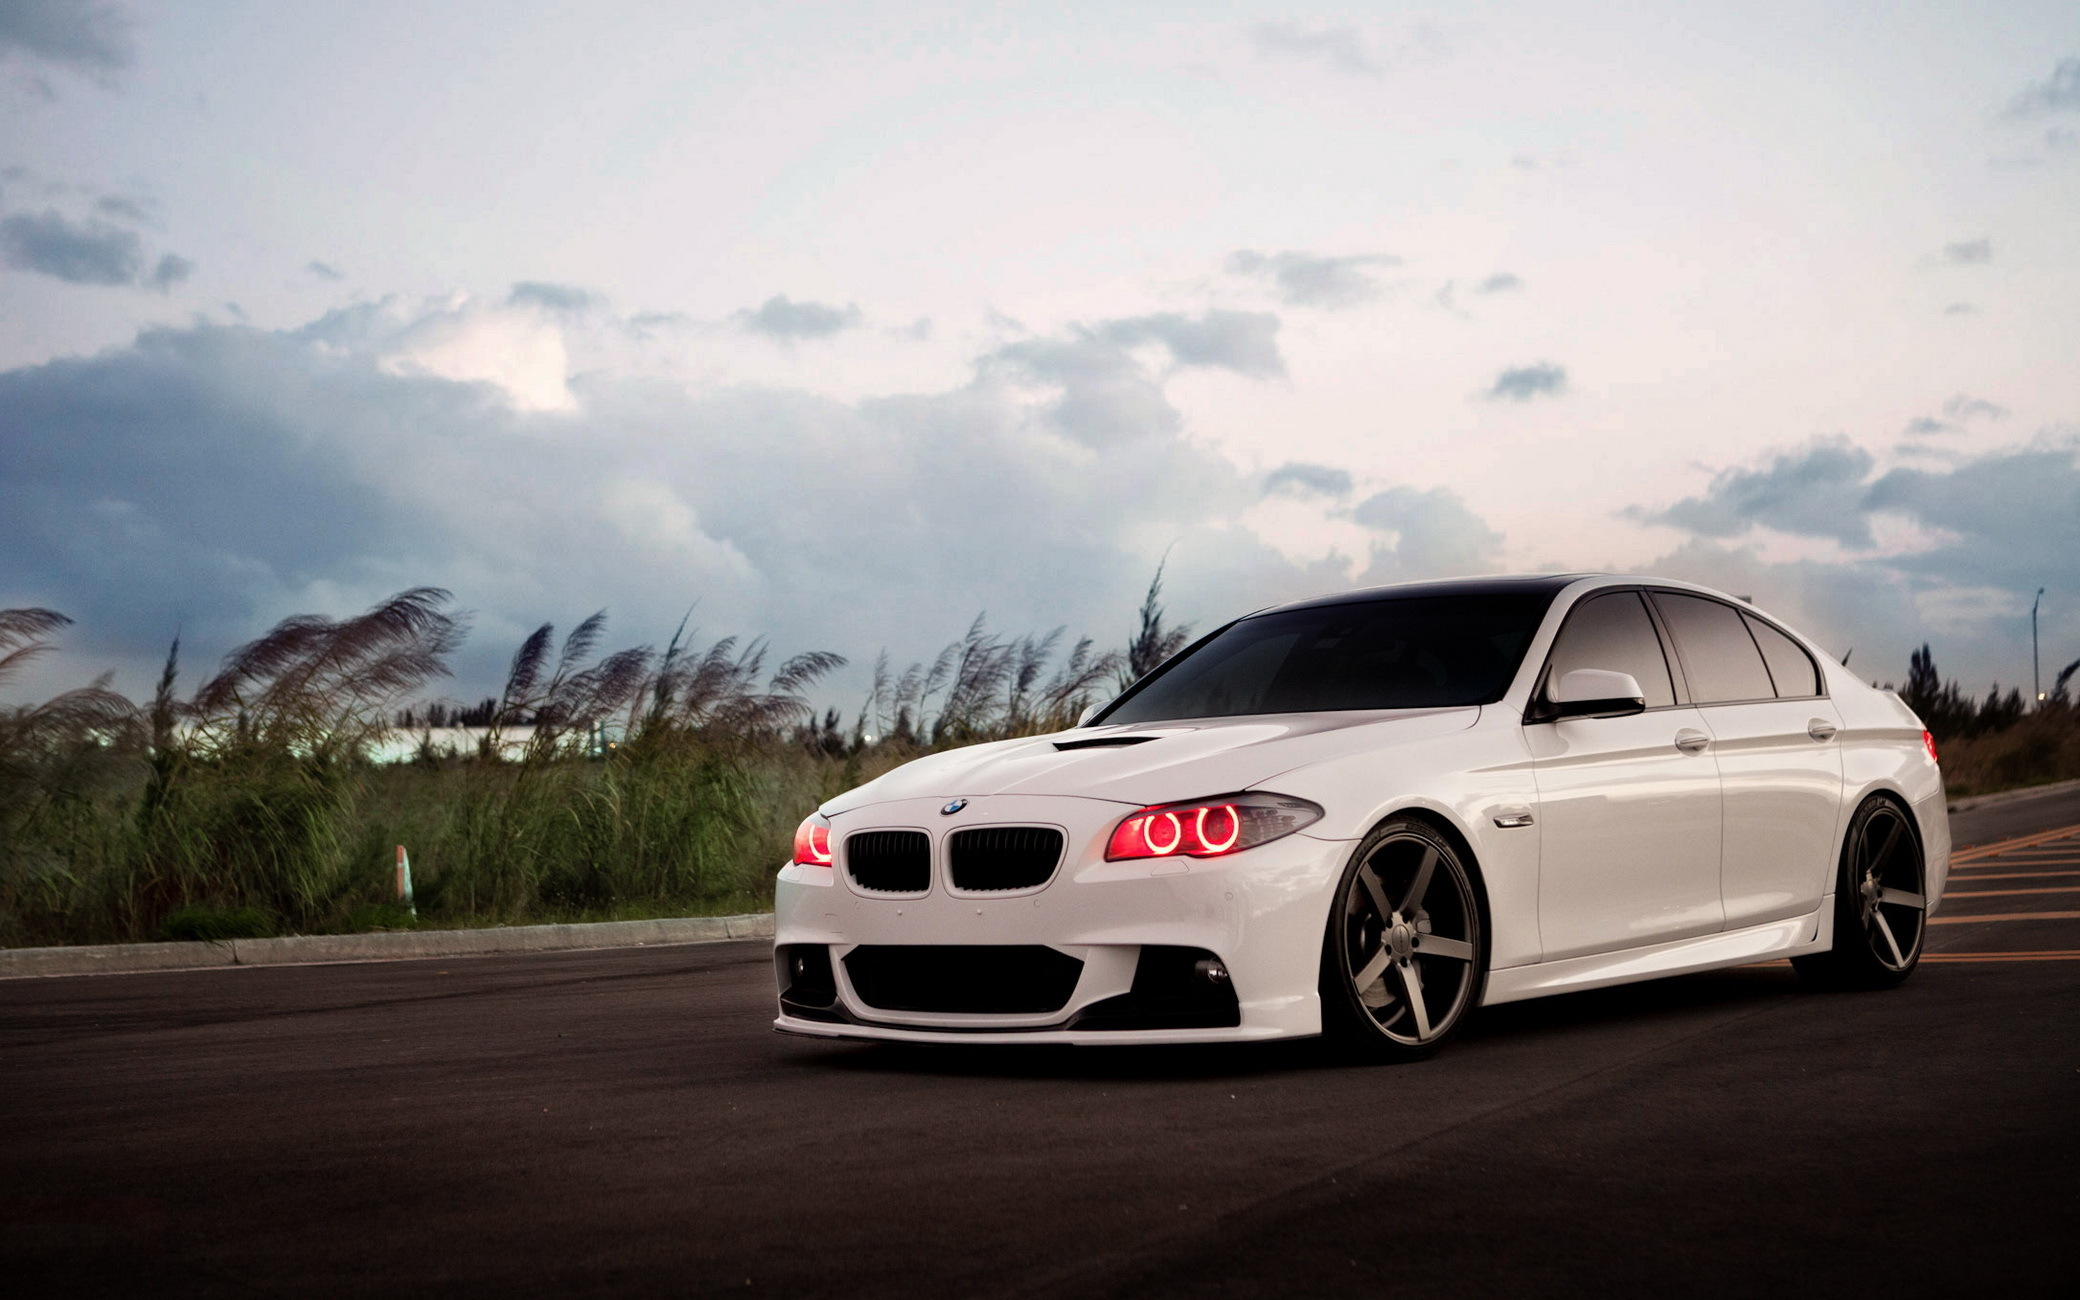 BMW Series 5 Vossen Wheels Wallpapers - 2080x1300 - 497282